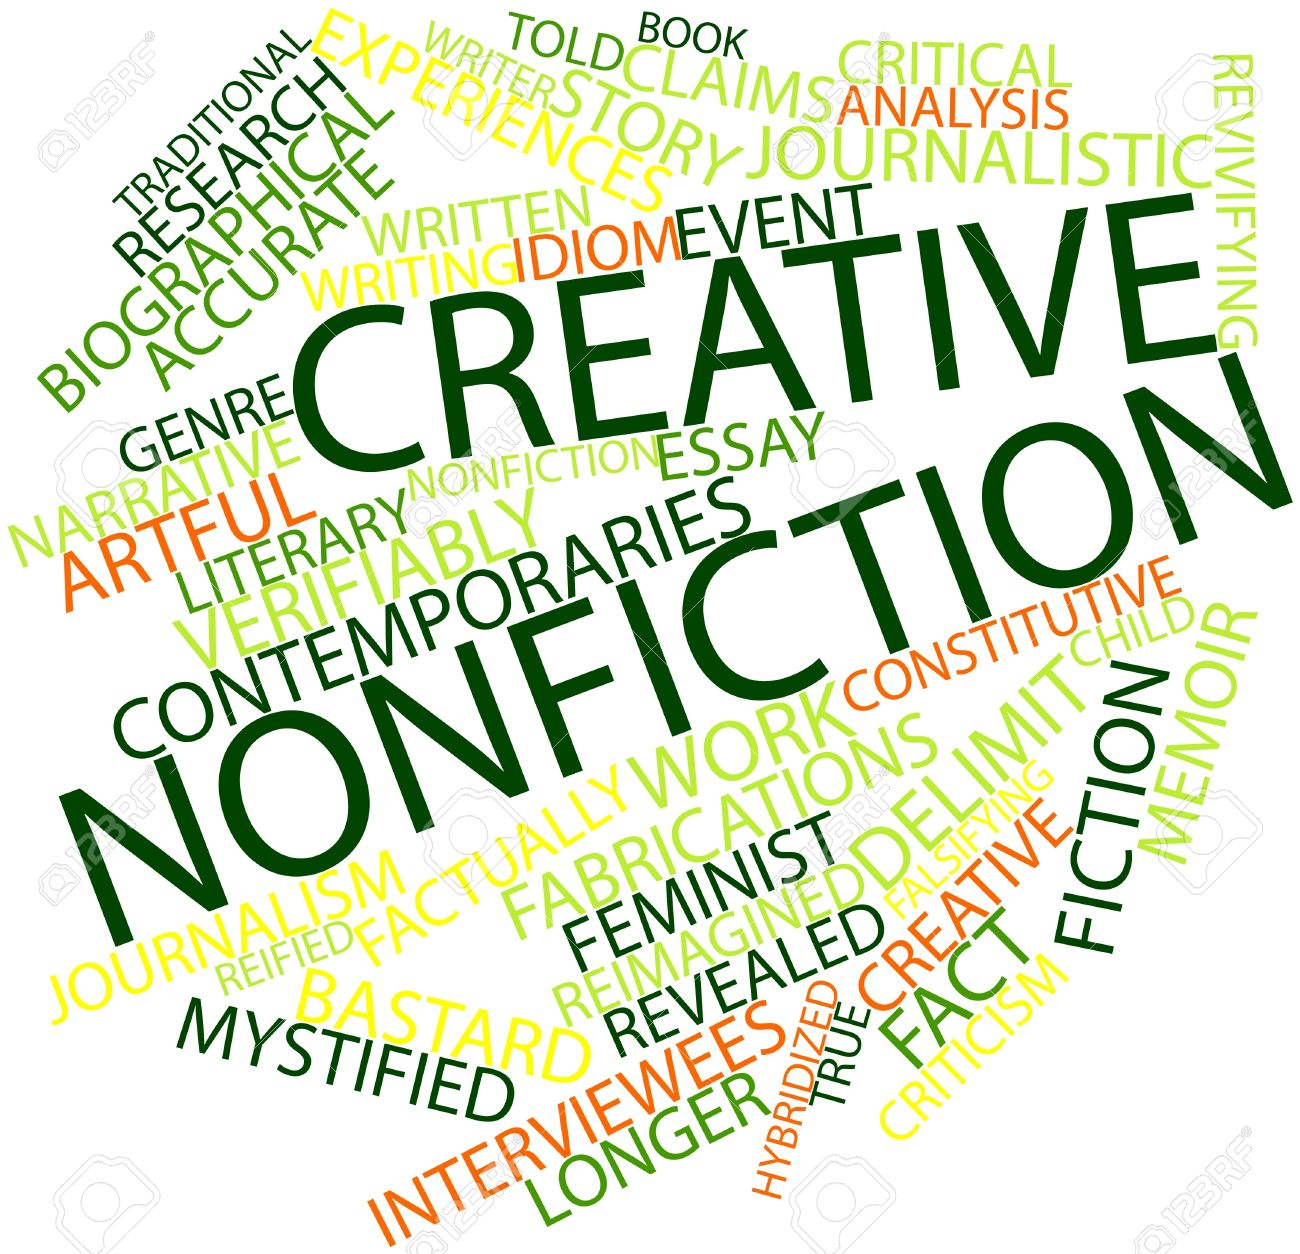 An Introduction to Creative Nonfiction Writing     Connecticut     Today we look at another short form  nonfiction short stories  Tineke  the  OYAN    Writing SkillsOn WritingCreative WritingWriting TipsWriting